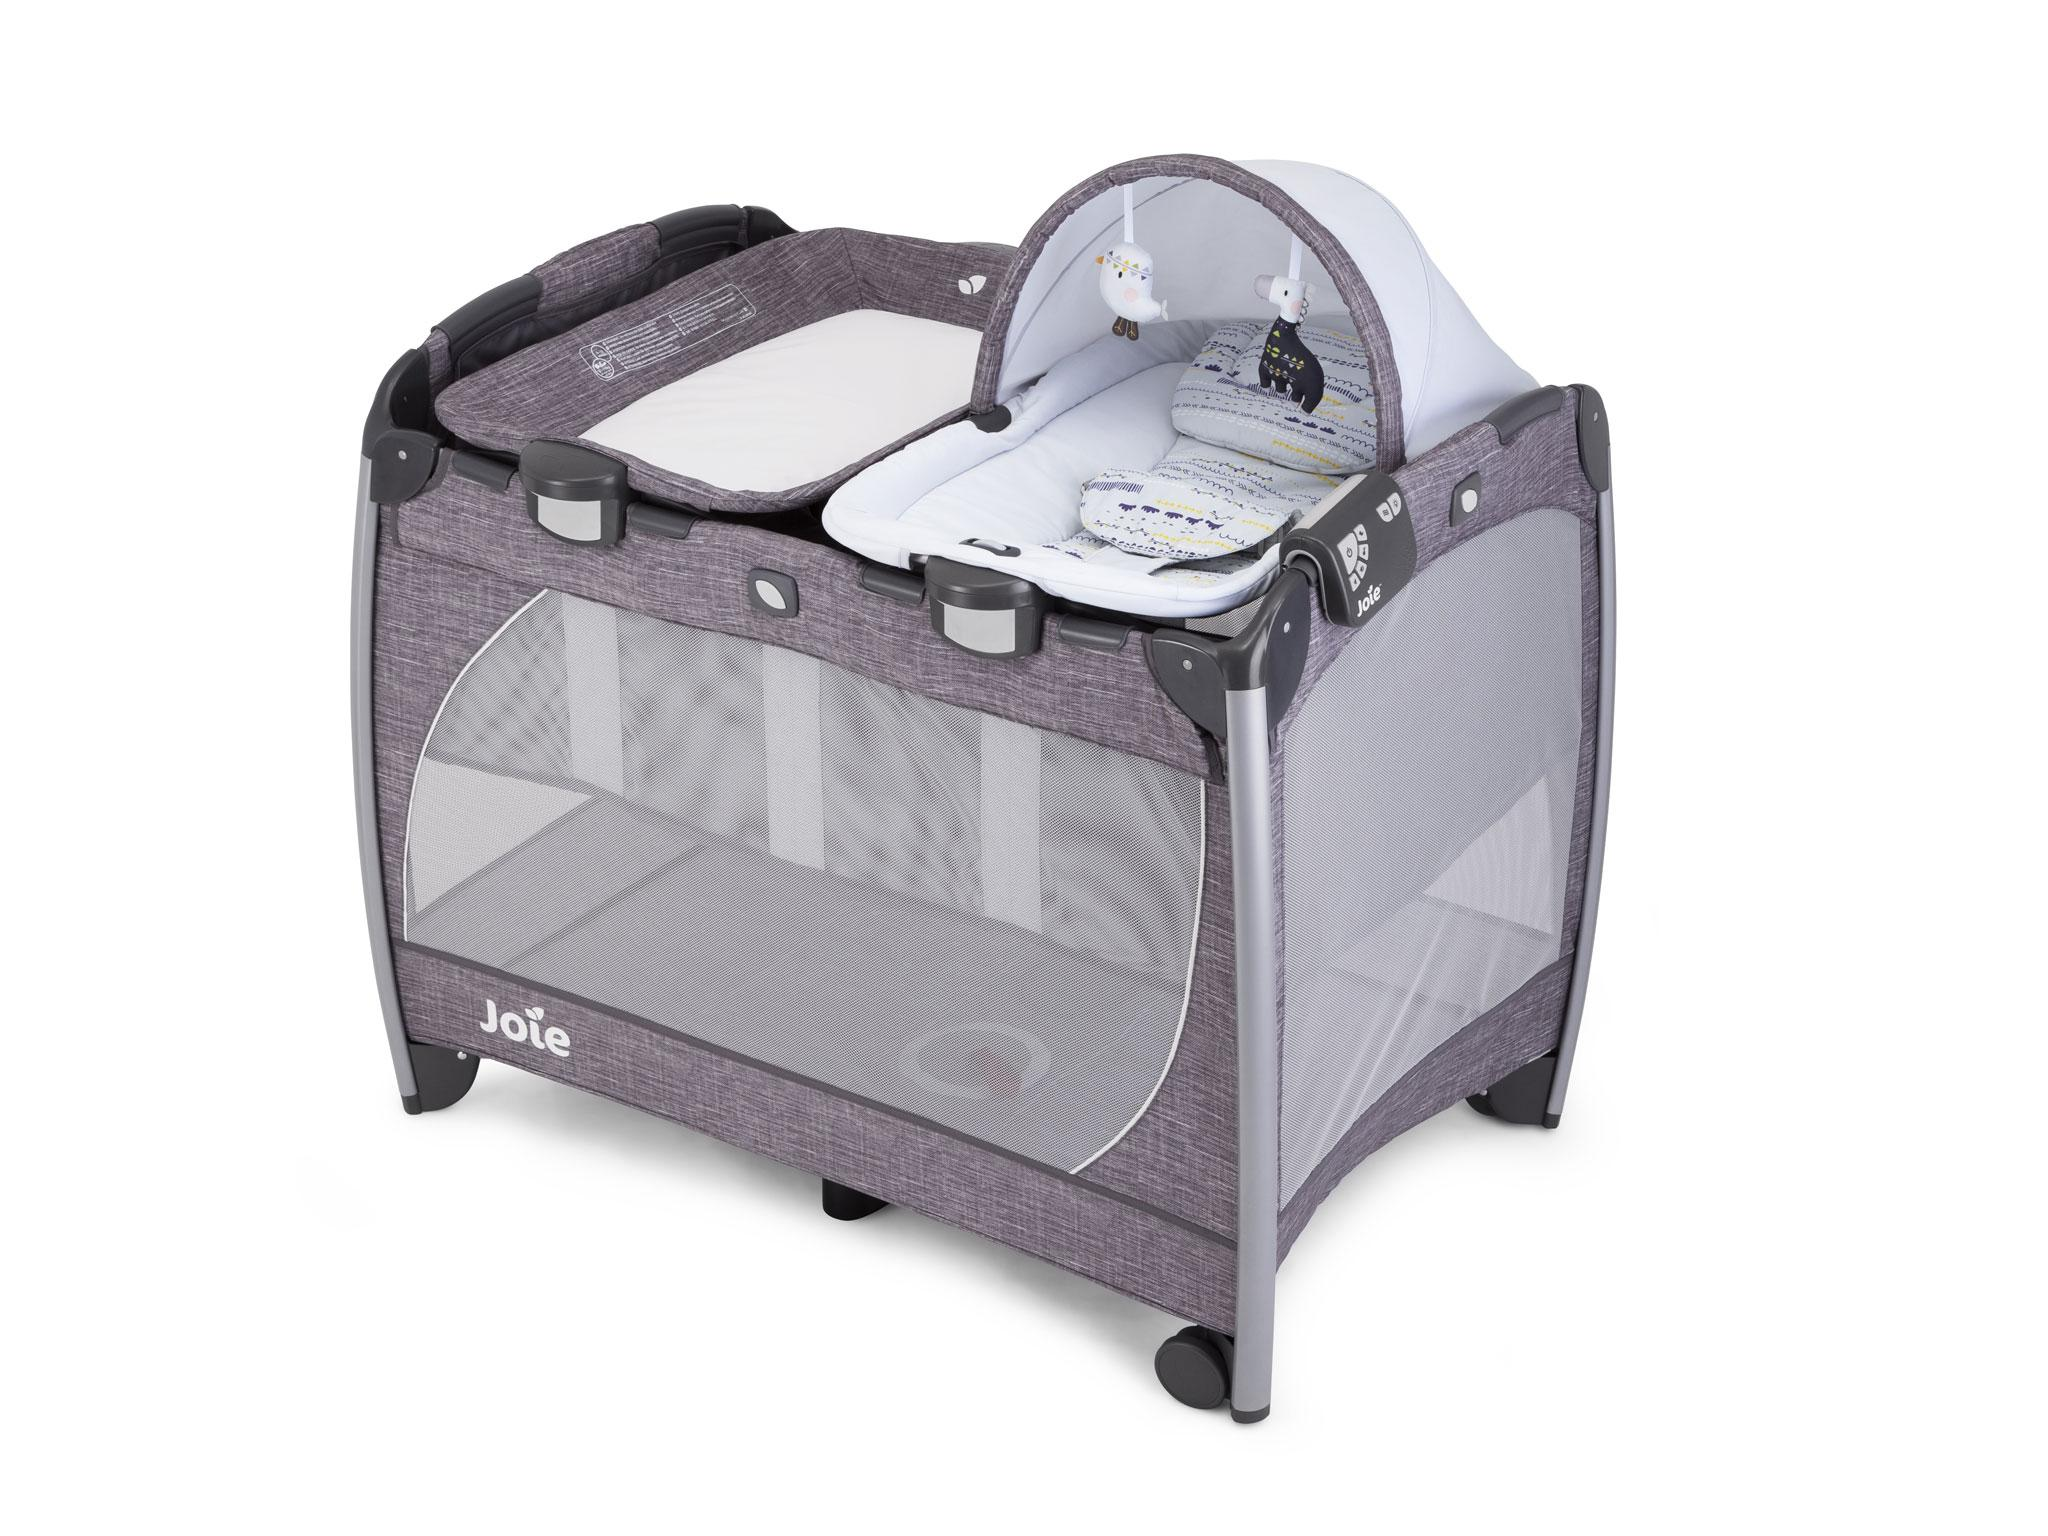 It has wheels to make it easily manoeuvrable and masses of extra features including a rocker, changing unit, light-and-sounds unit and bassinet.